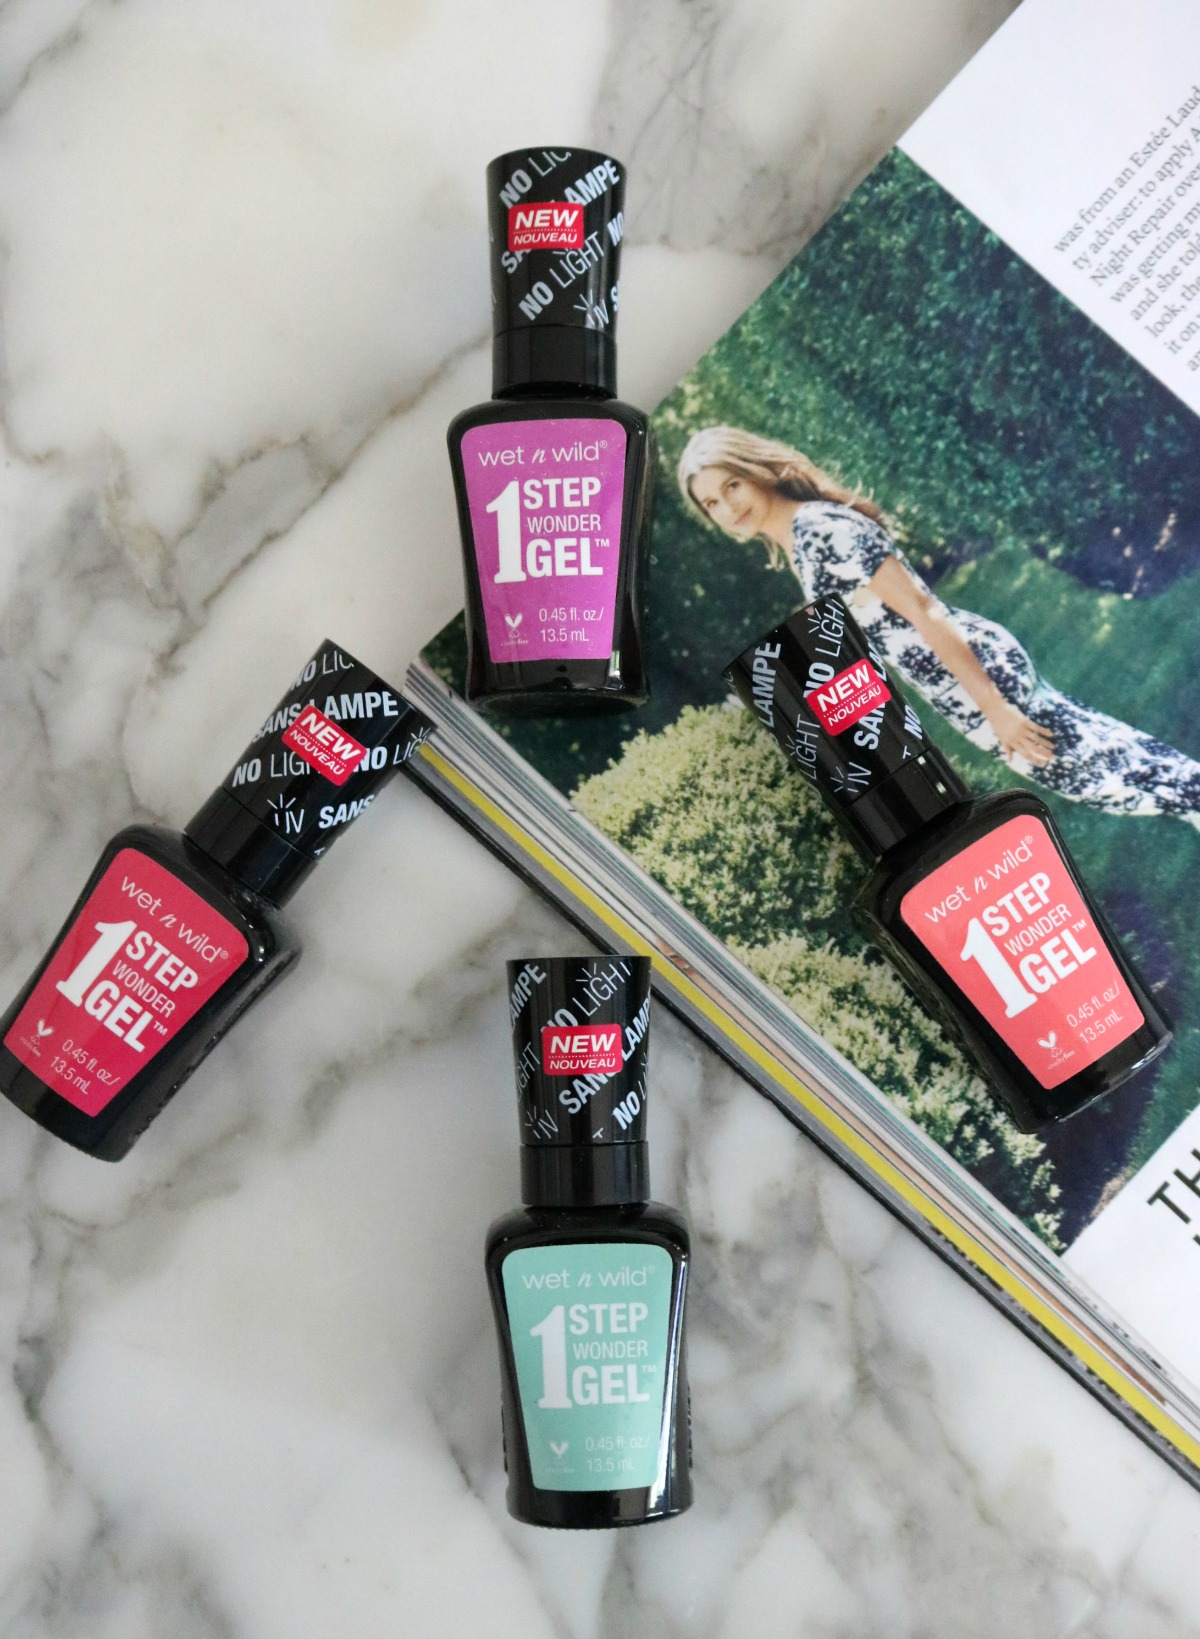 Wet n Wild Gel Nail Polish I One-Step Wonder Gel Polish #CrueltyFree #Nails